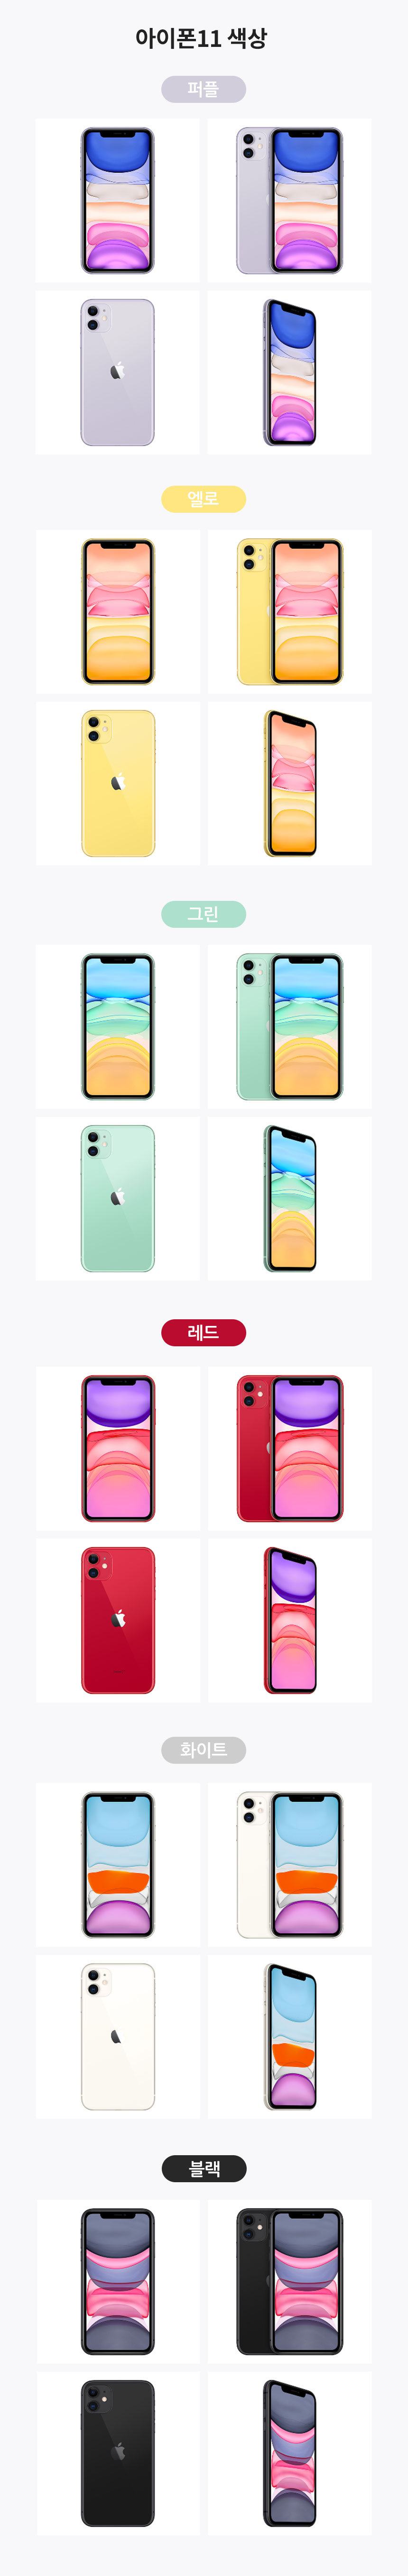 iphone11_color.jpg